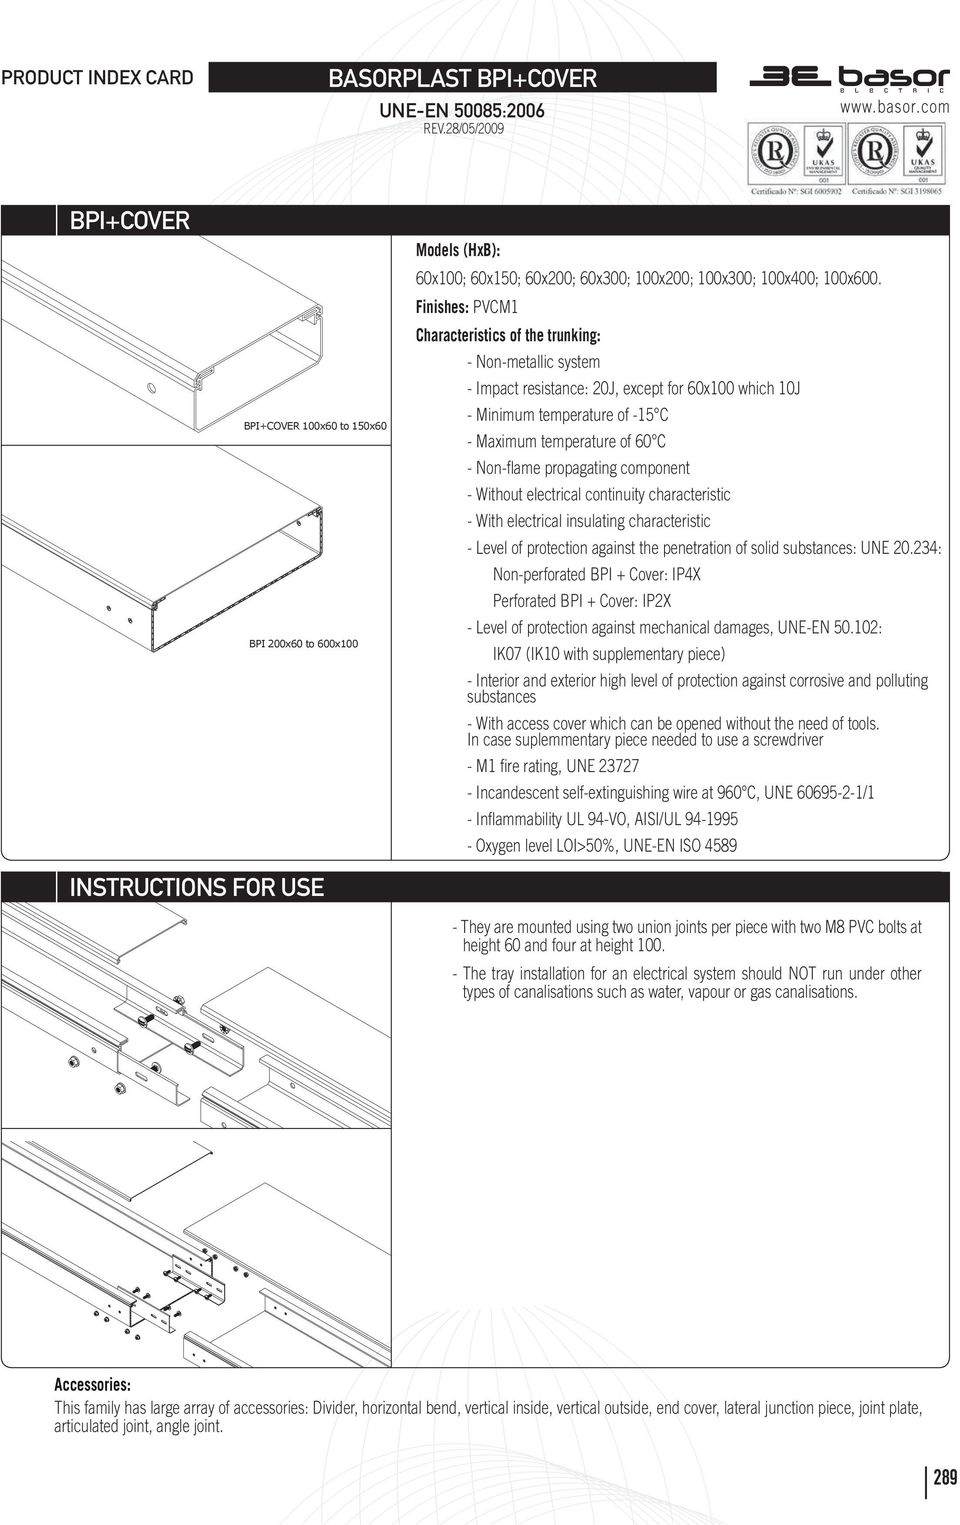 Finishes: PVCM1 Characteristics of the trunking: - Non-metallic system - Impact resistance: 20J, except for 60x100 which 10J - Minimum temperature of -15 C - Maximum temperature of 60 C - Non-flame